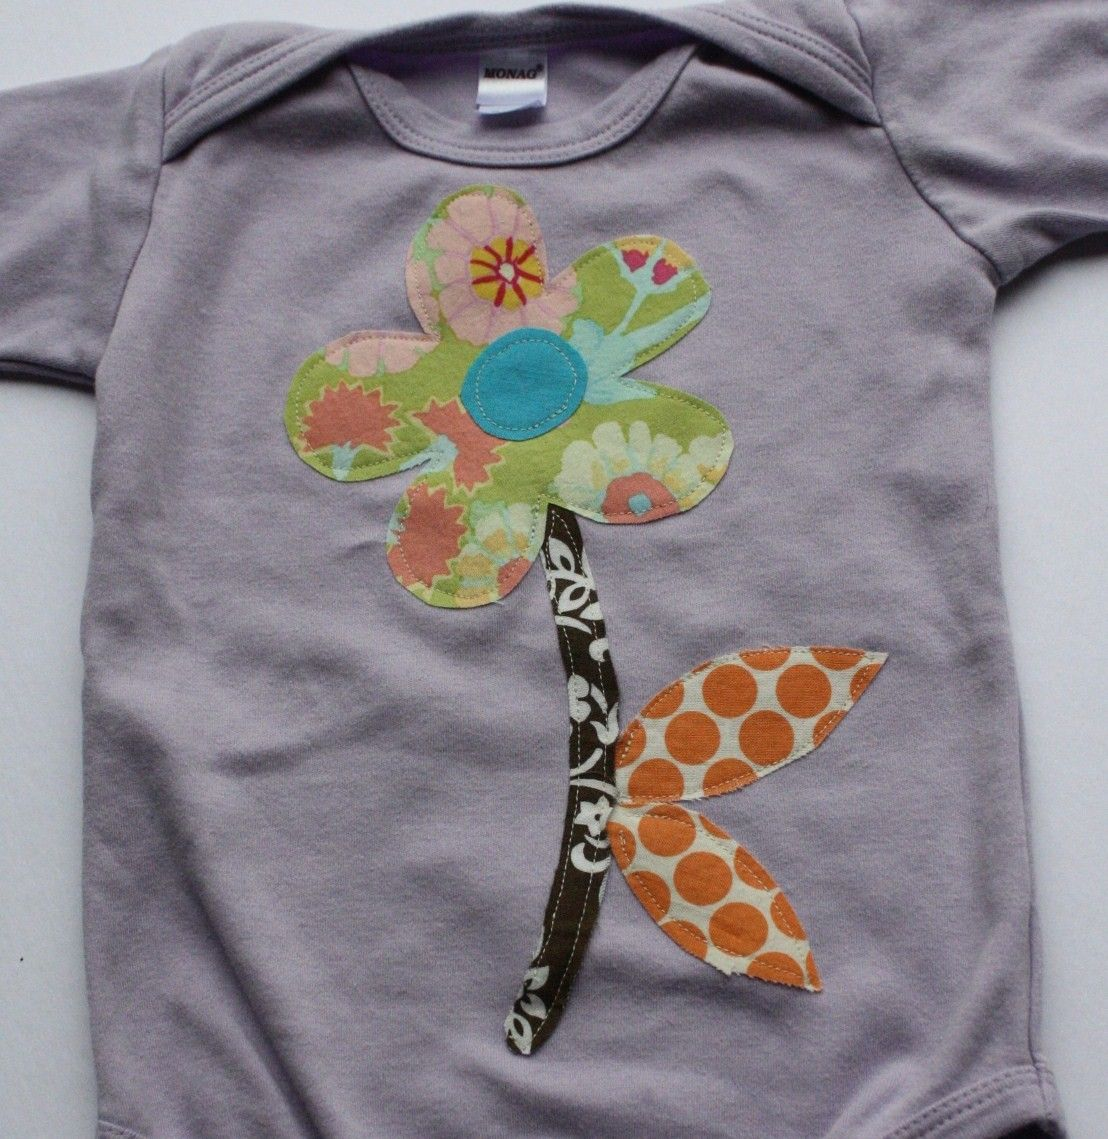 Flower Applique Onesie or T-shirt   Sewing, Knitting, Crafting ...